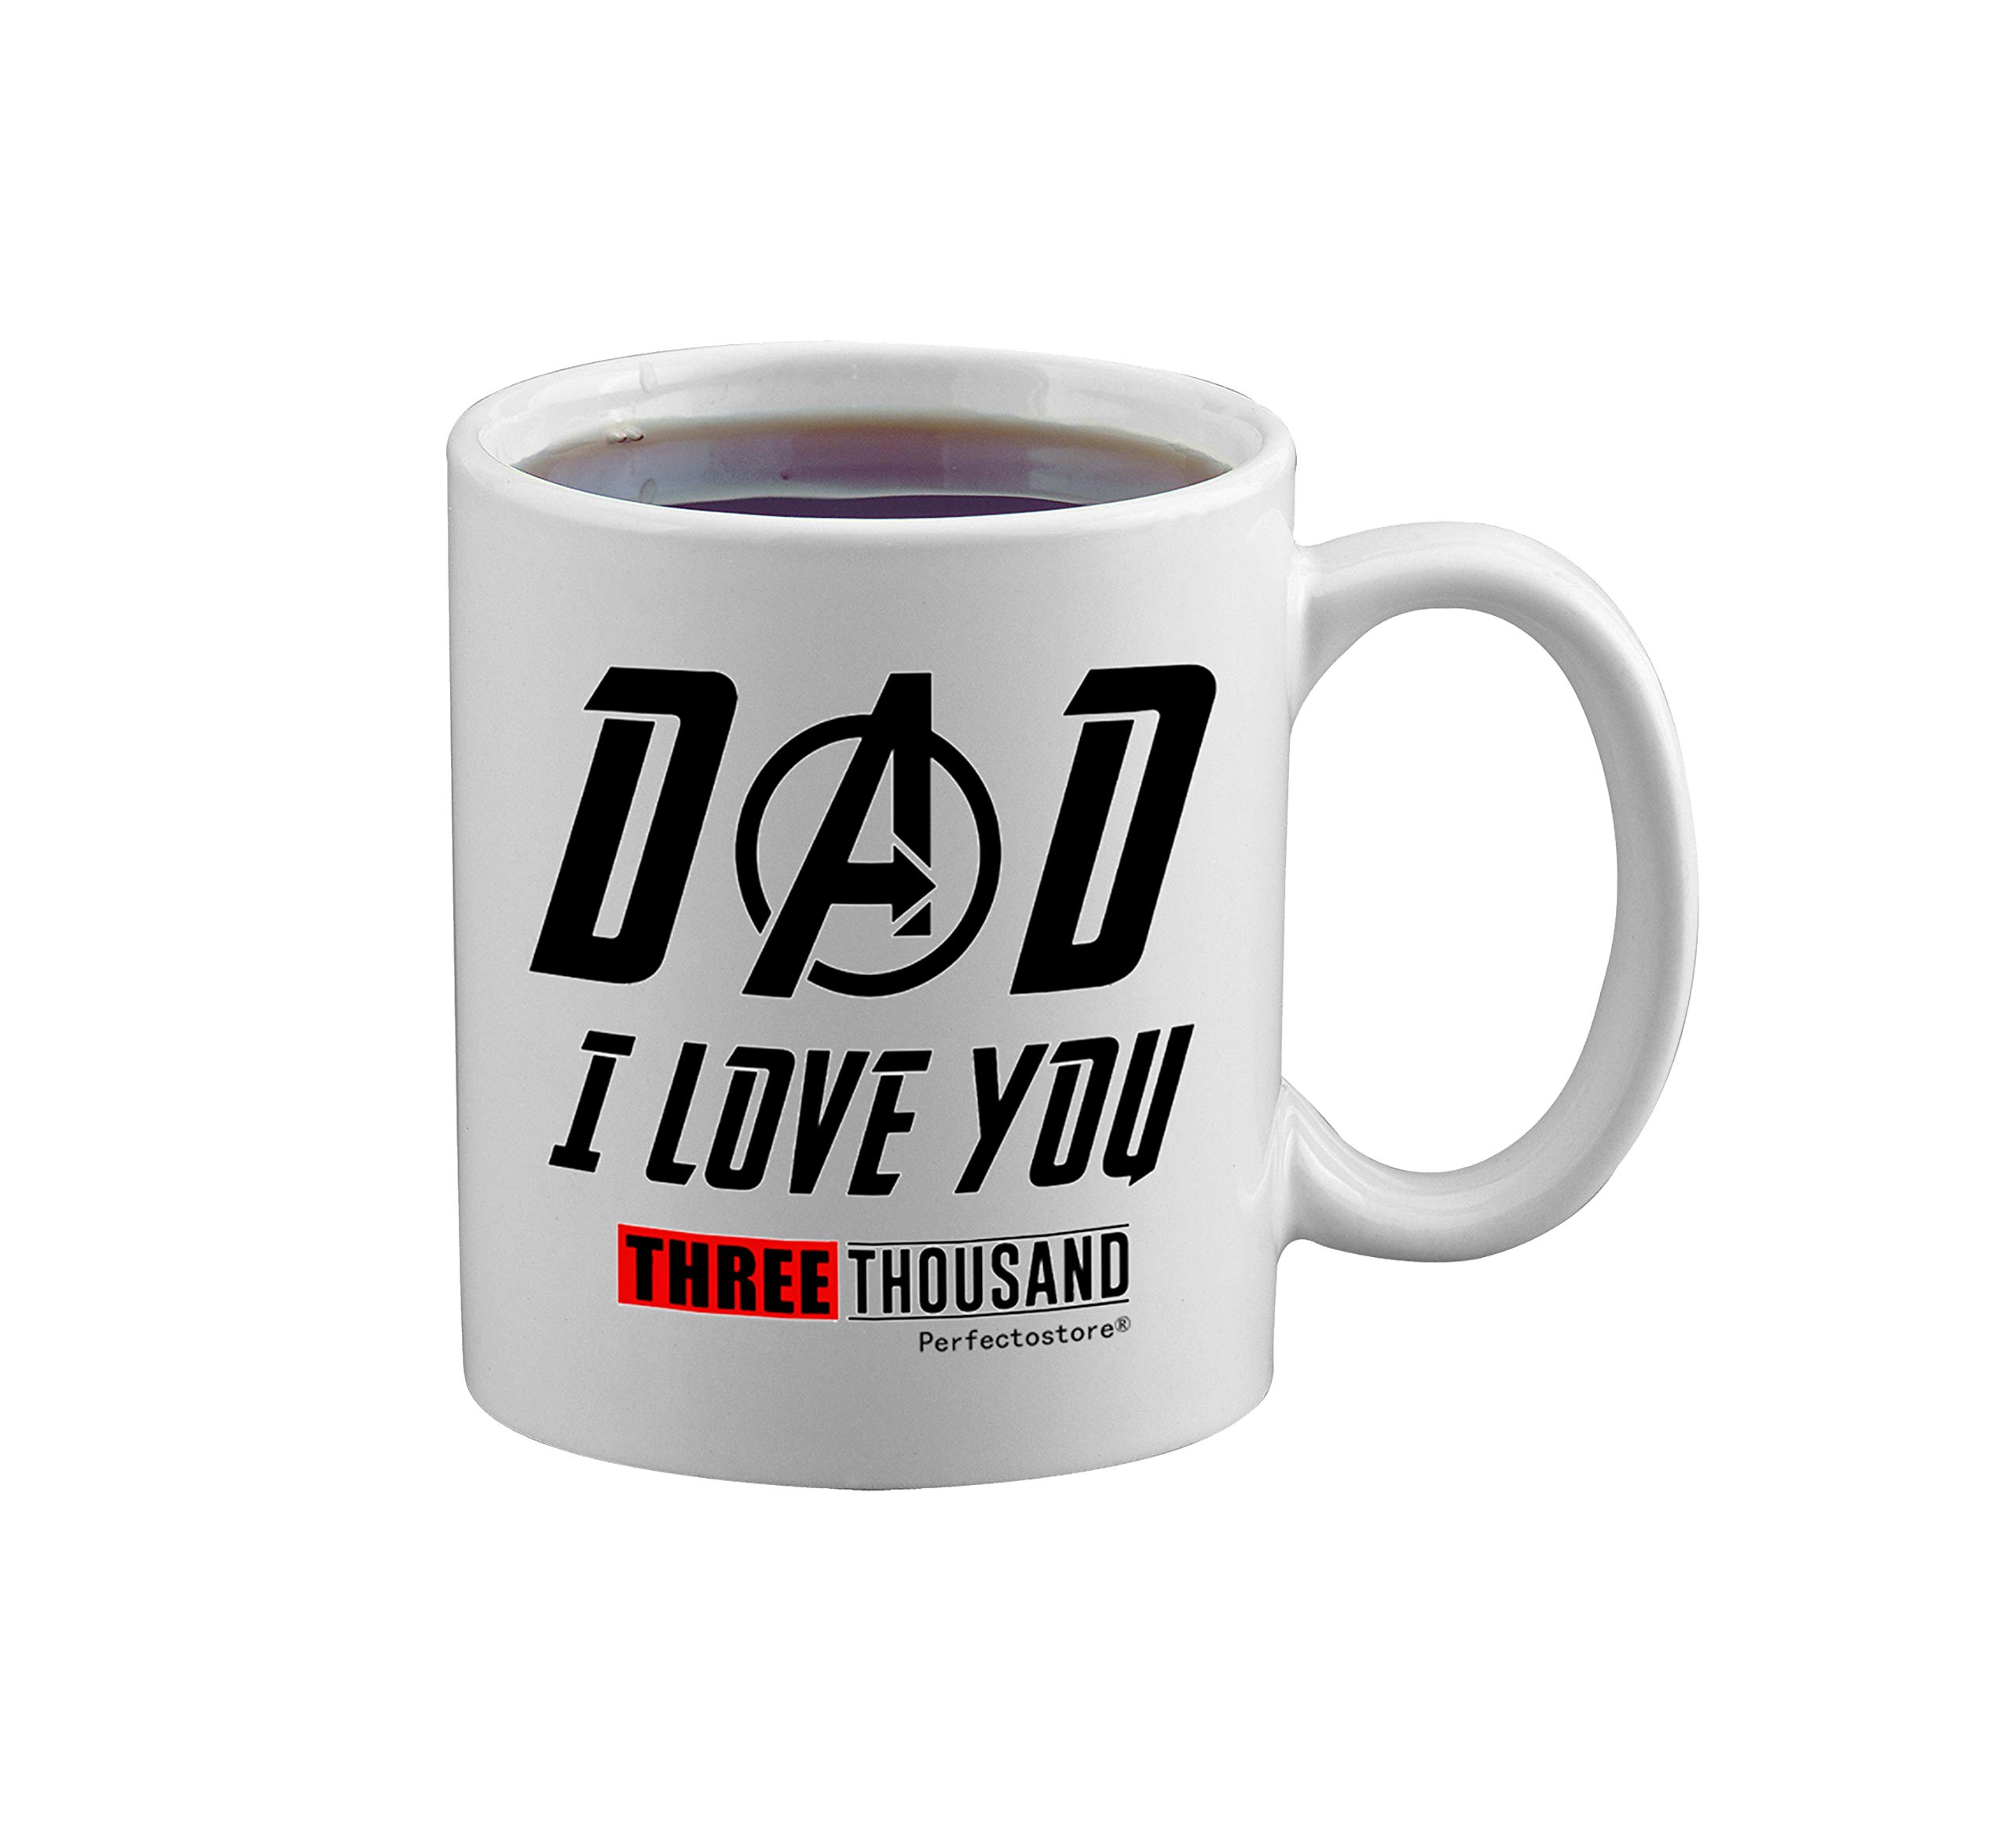 PerfectoStore I Love You 3000 Dad Gifts from Daughter If Had Differen't Dad I'd Kick Him in Face Dad Gifts from Son Funny Dad Gift Coffee Mug Tea Cup White by PerfectoStore (Image #5)